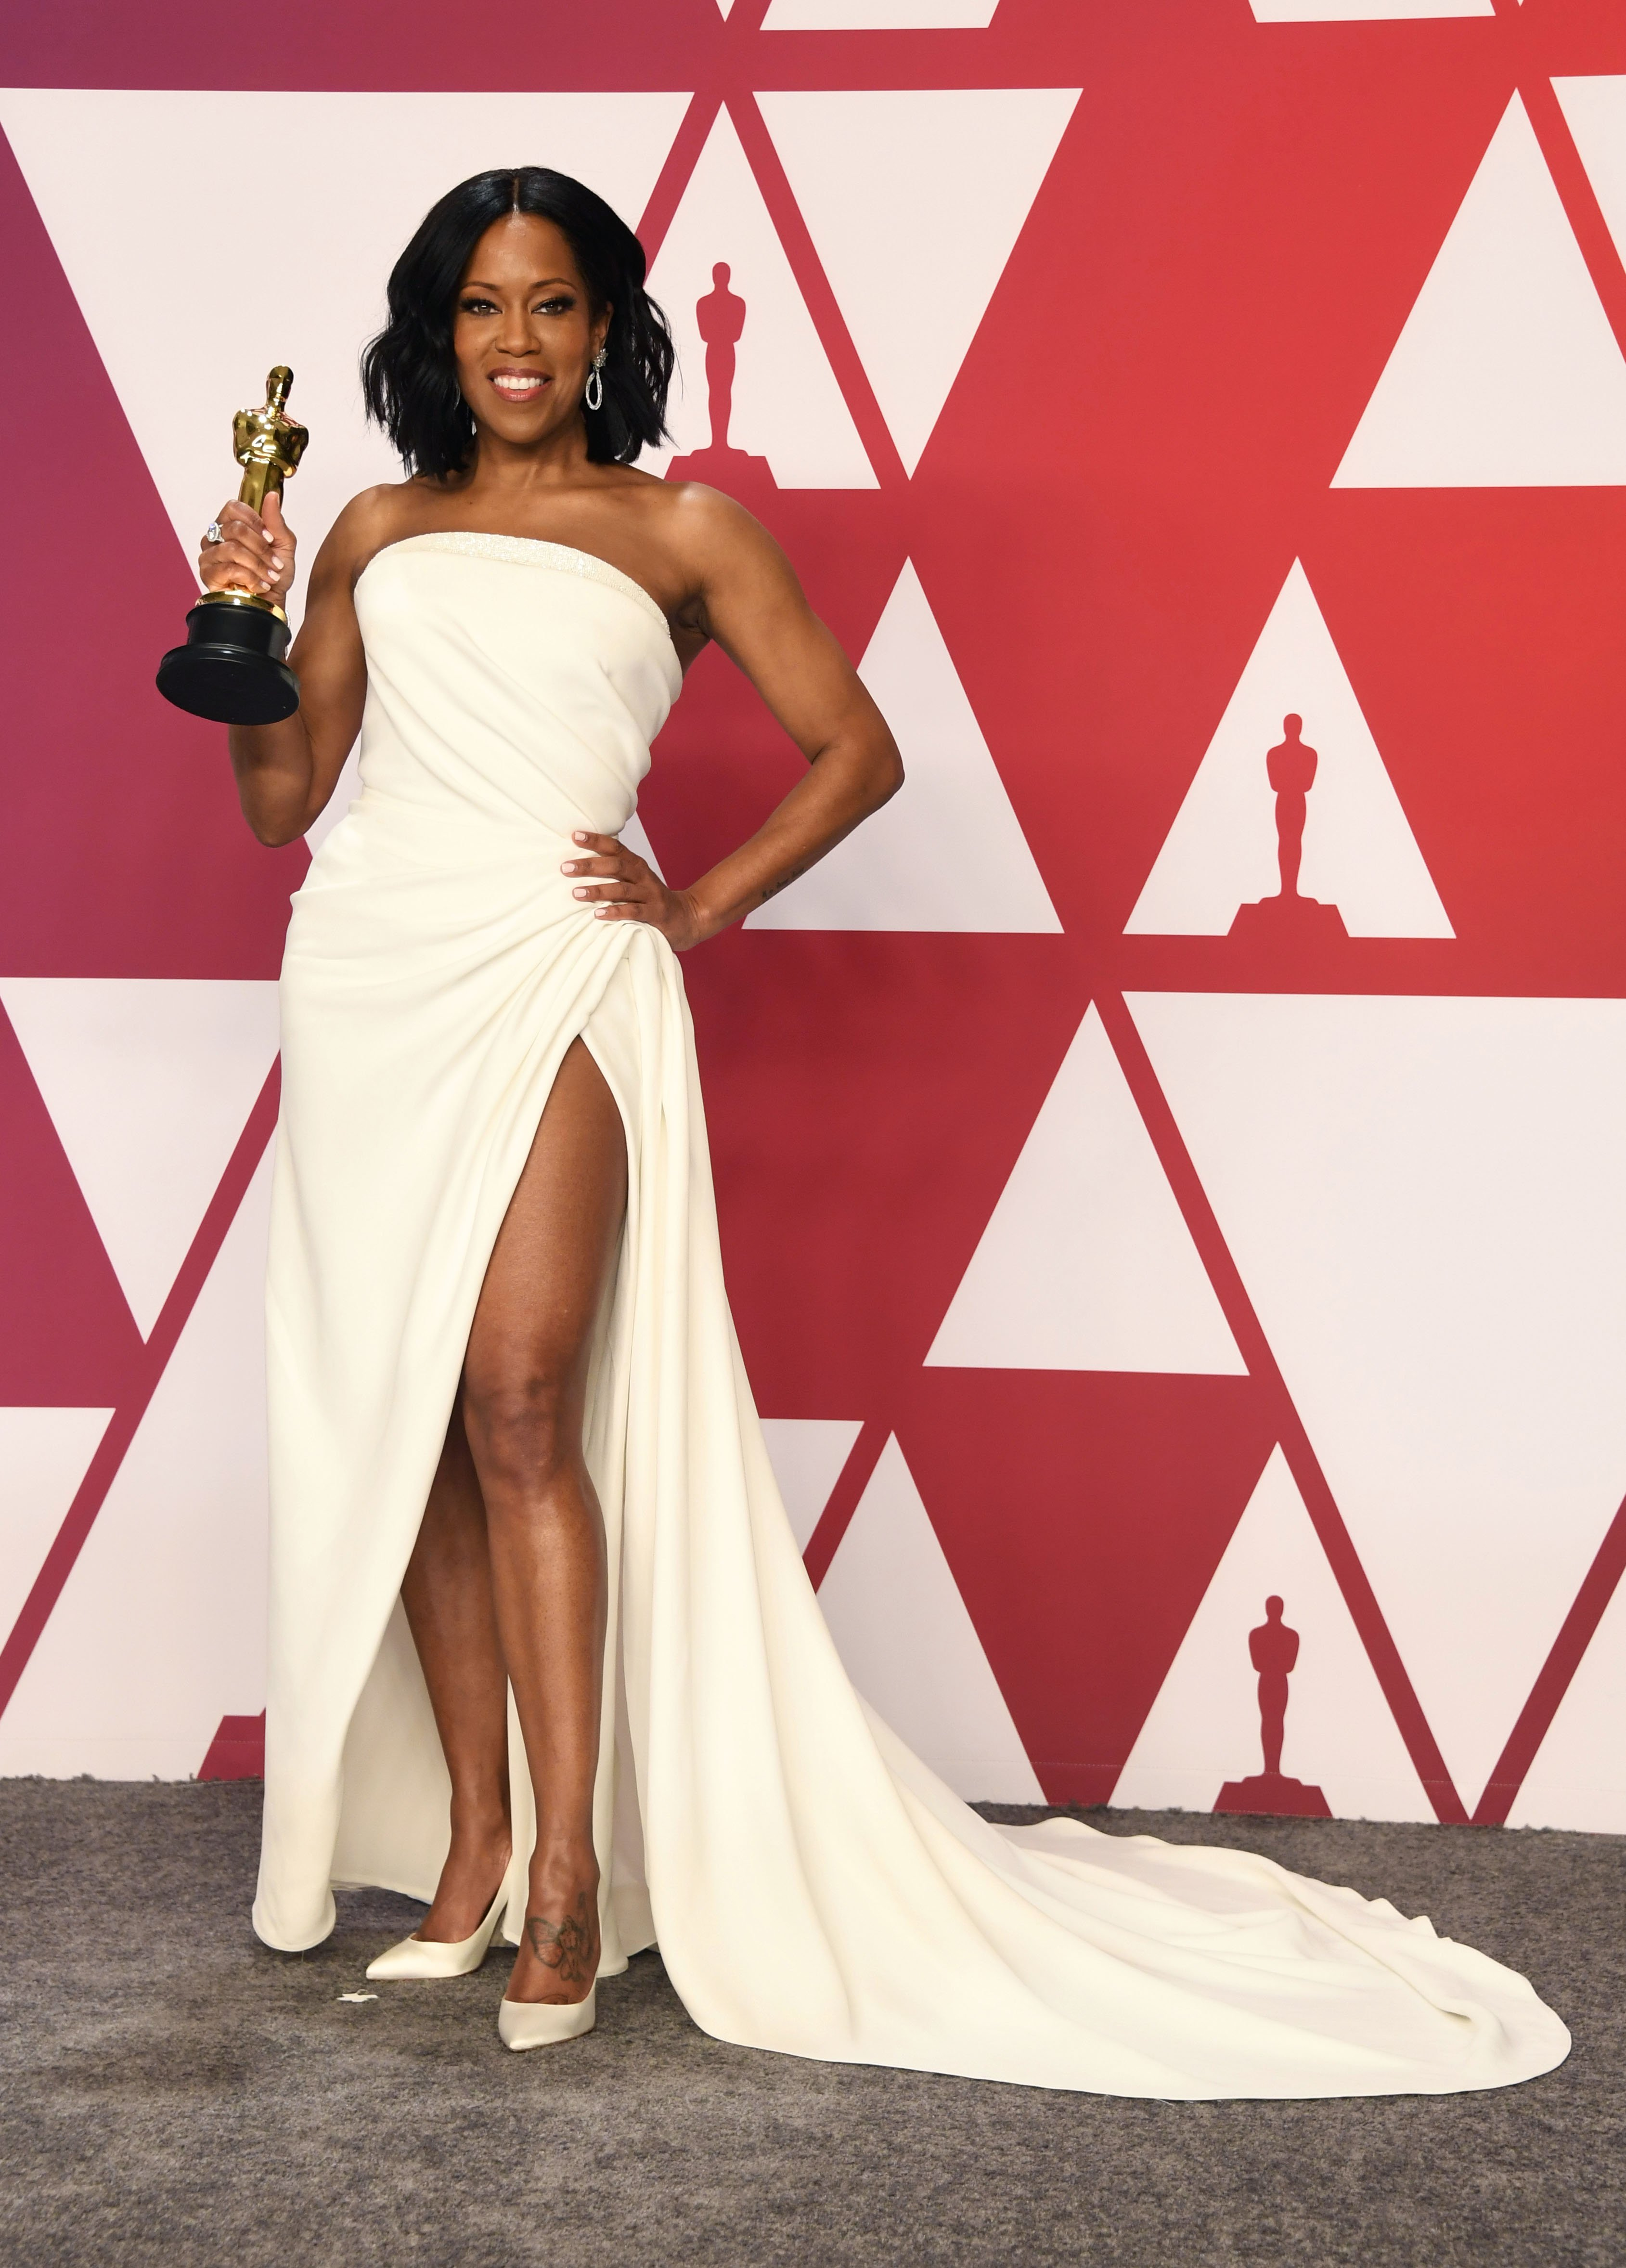 Regina King in the press room during the 91st Annual Academy Awards at Hollywood and Highland on Feb. 24, 2019 in Hollywood, California. |Photo: Getty Images